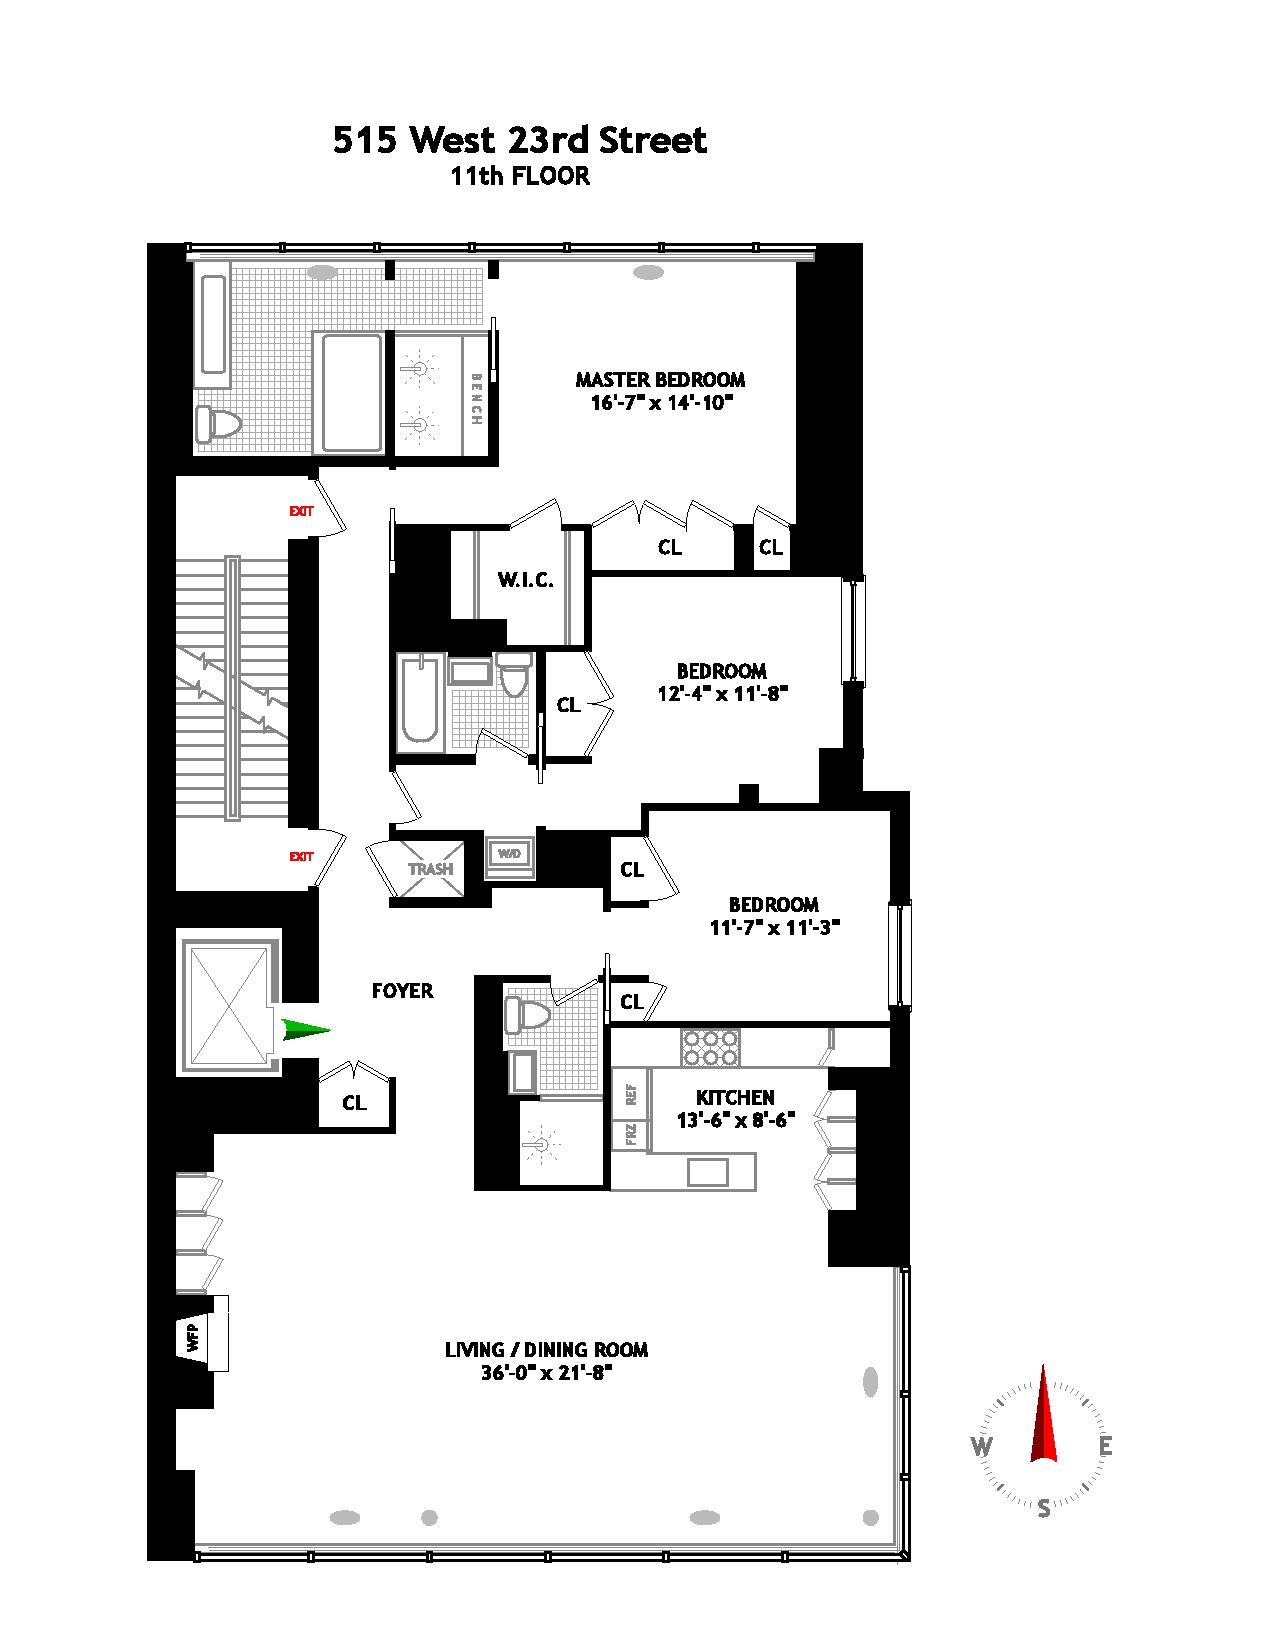 StreetEasy: 515 West 23rd St. 11TH-FLOOR - Condo Apartment Sale at HL23 in West Chelsea, Manhattan